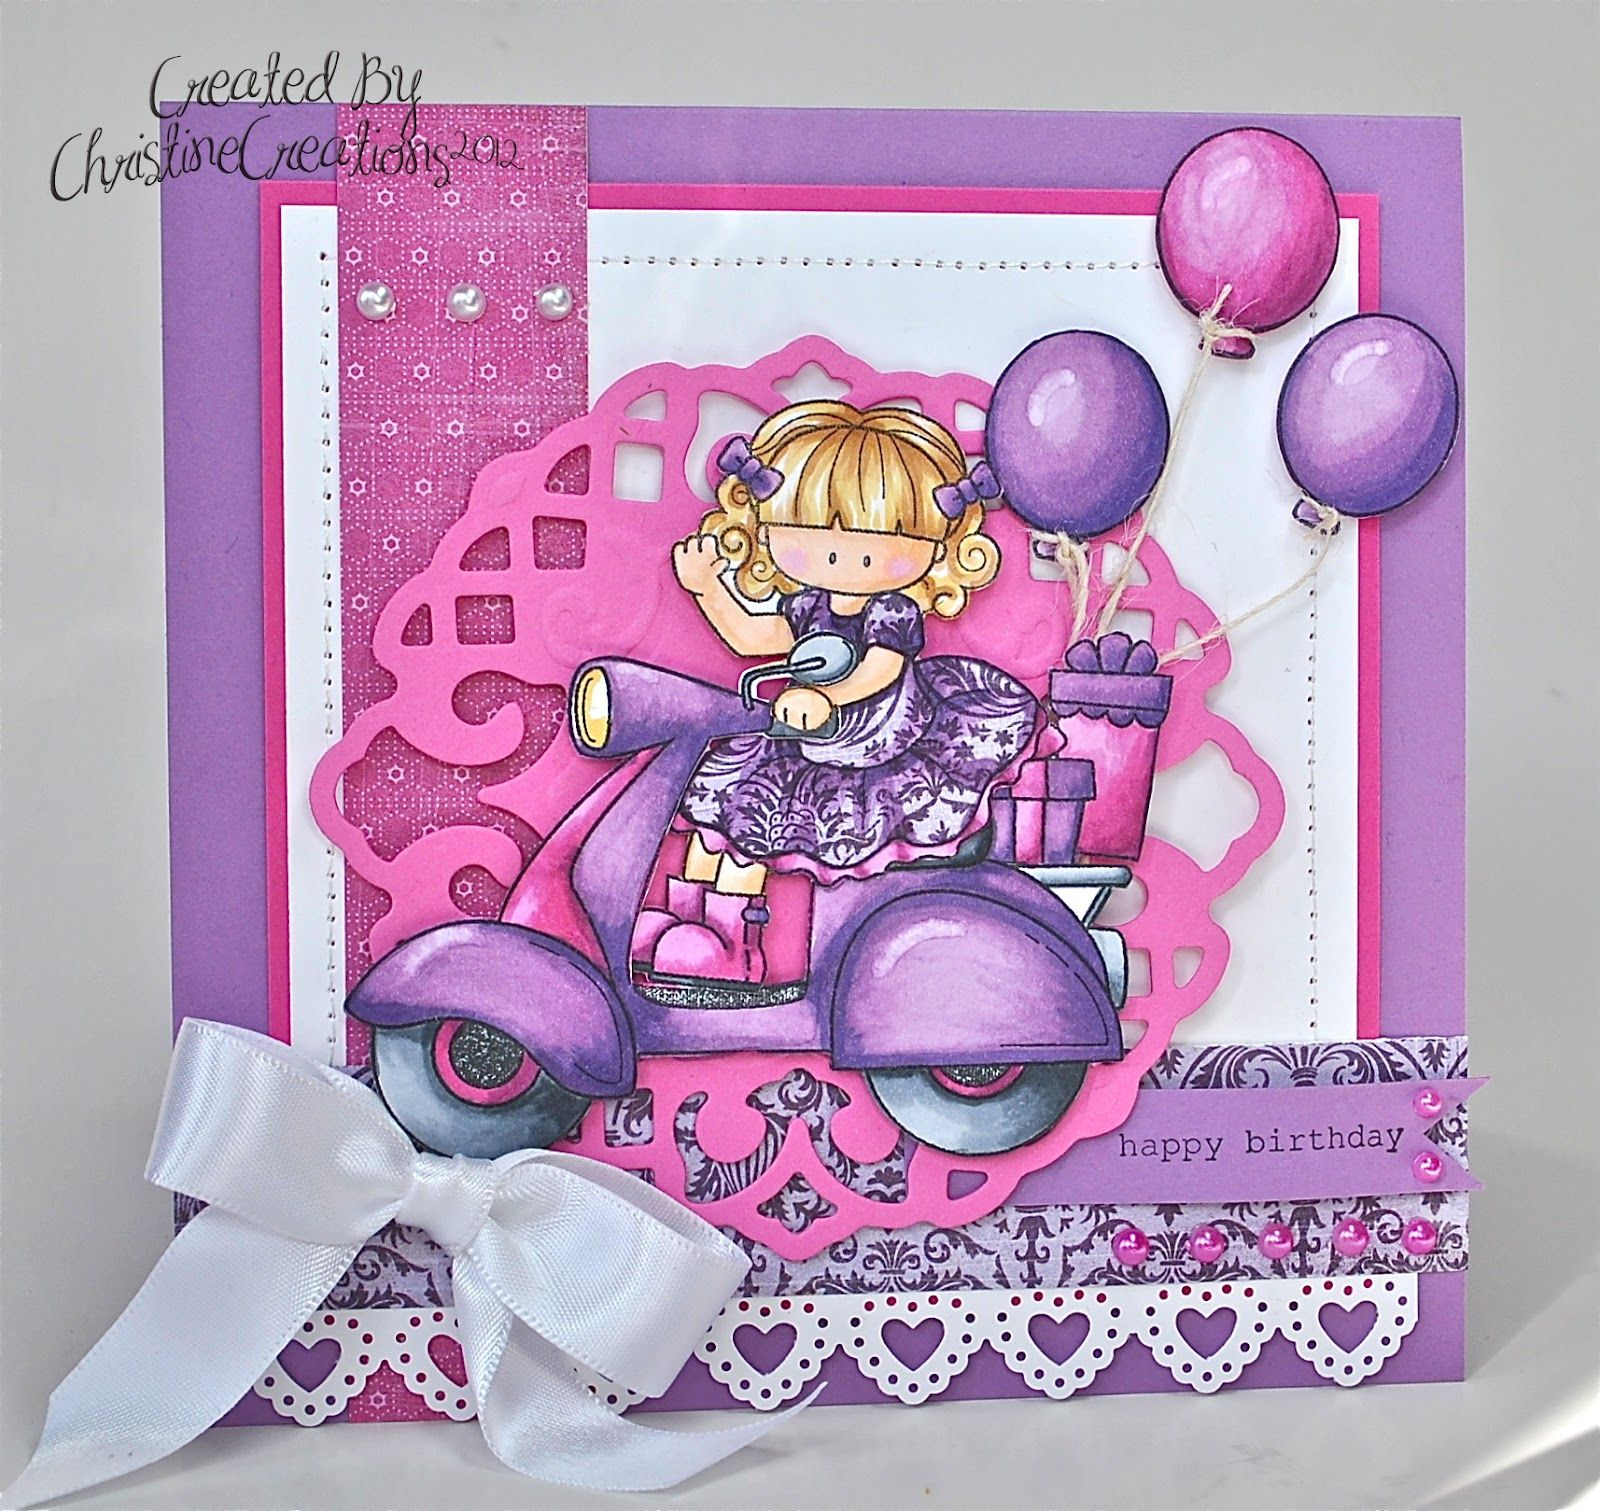 Cute 12 year old girl birthday cards cards birthday pinterest cute 12 year old girl birthday cards cards birthday pinterest girl birthday cards girl birthday and cards kristyandbryce Choice Image